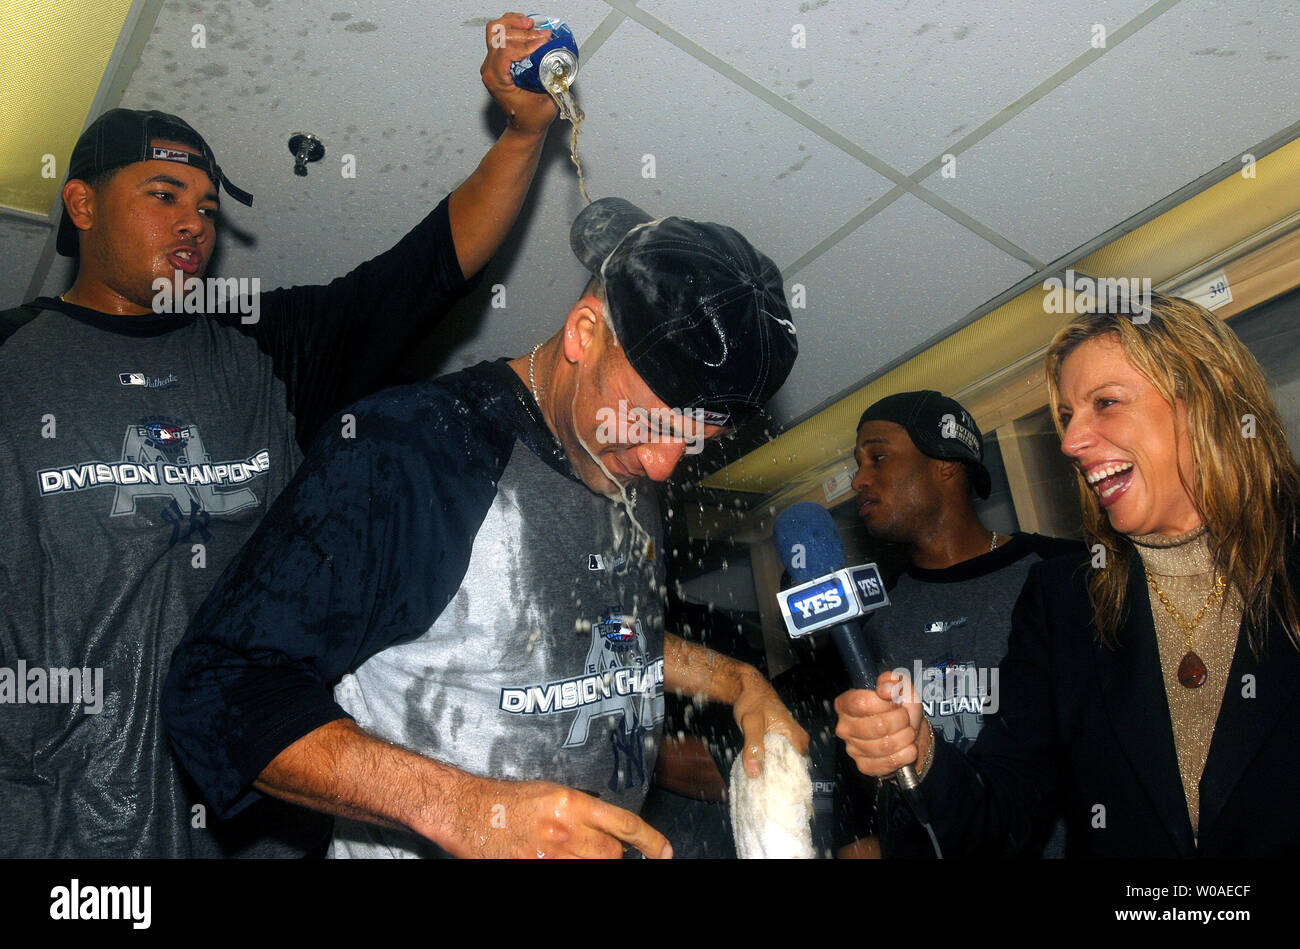 New York Yankees' Derek Jeter gets a dousing as he is being